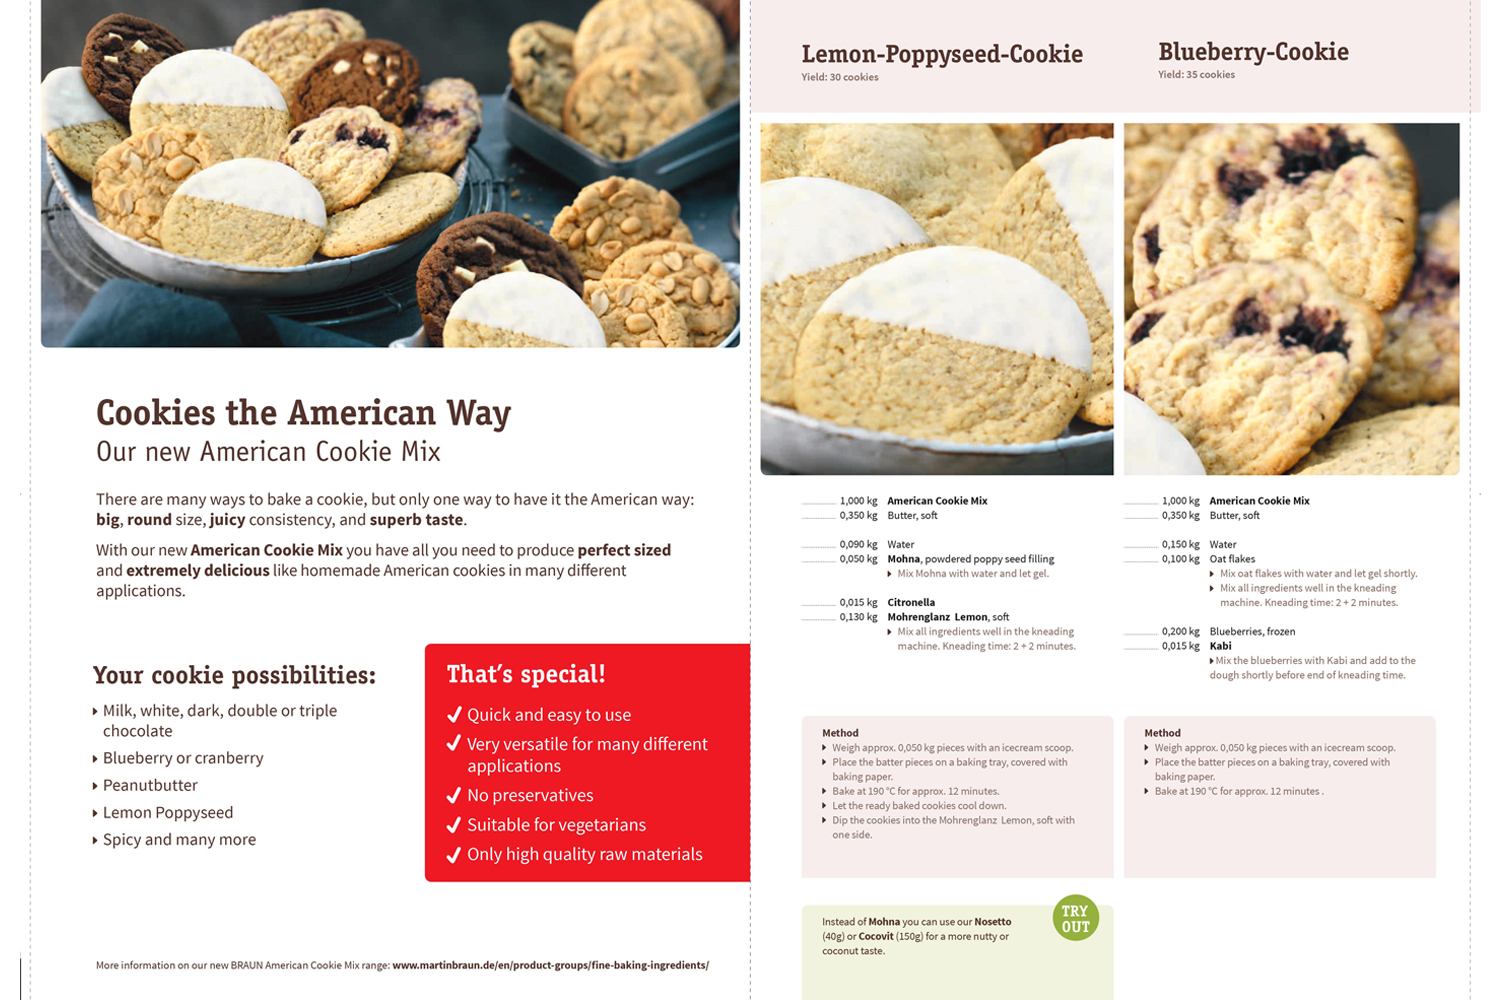 MB1456615985 - Martin Braun American Cookies Mix Ready to Use Pre-Mix 1kg